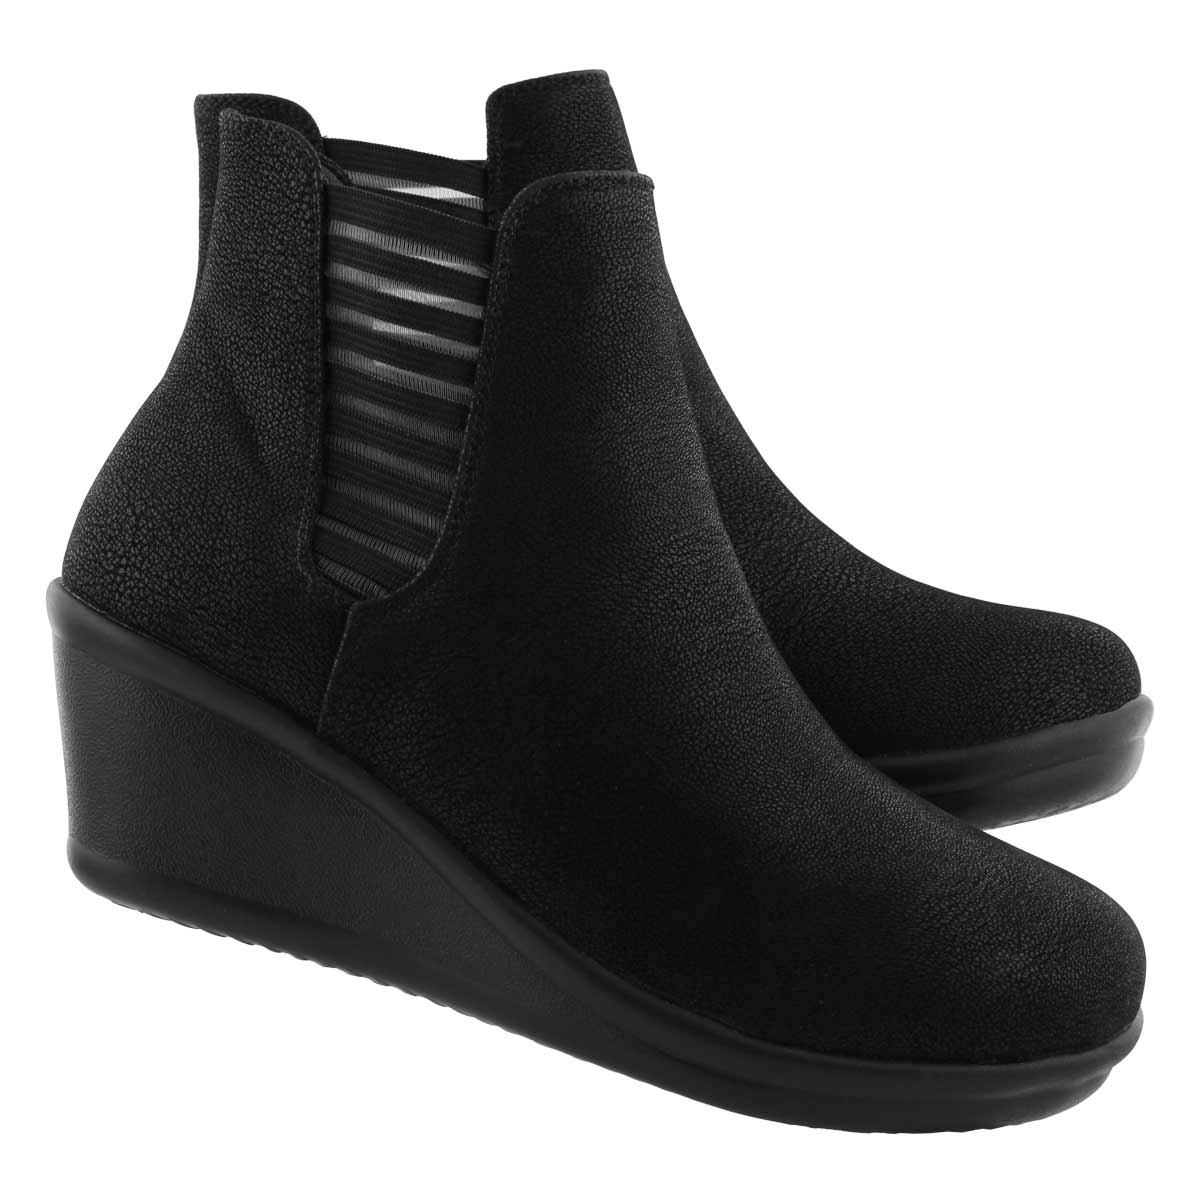 Lds Rumblers Beam Me Up blk chelsea boot